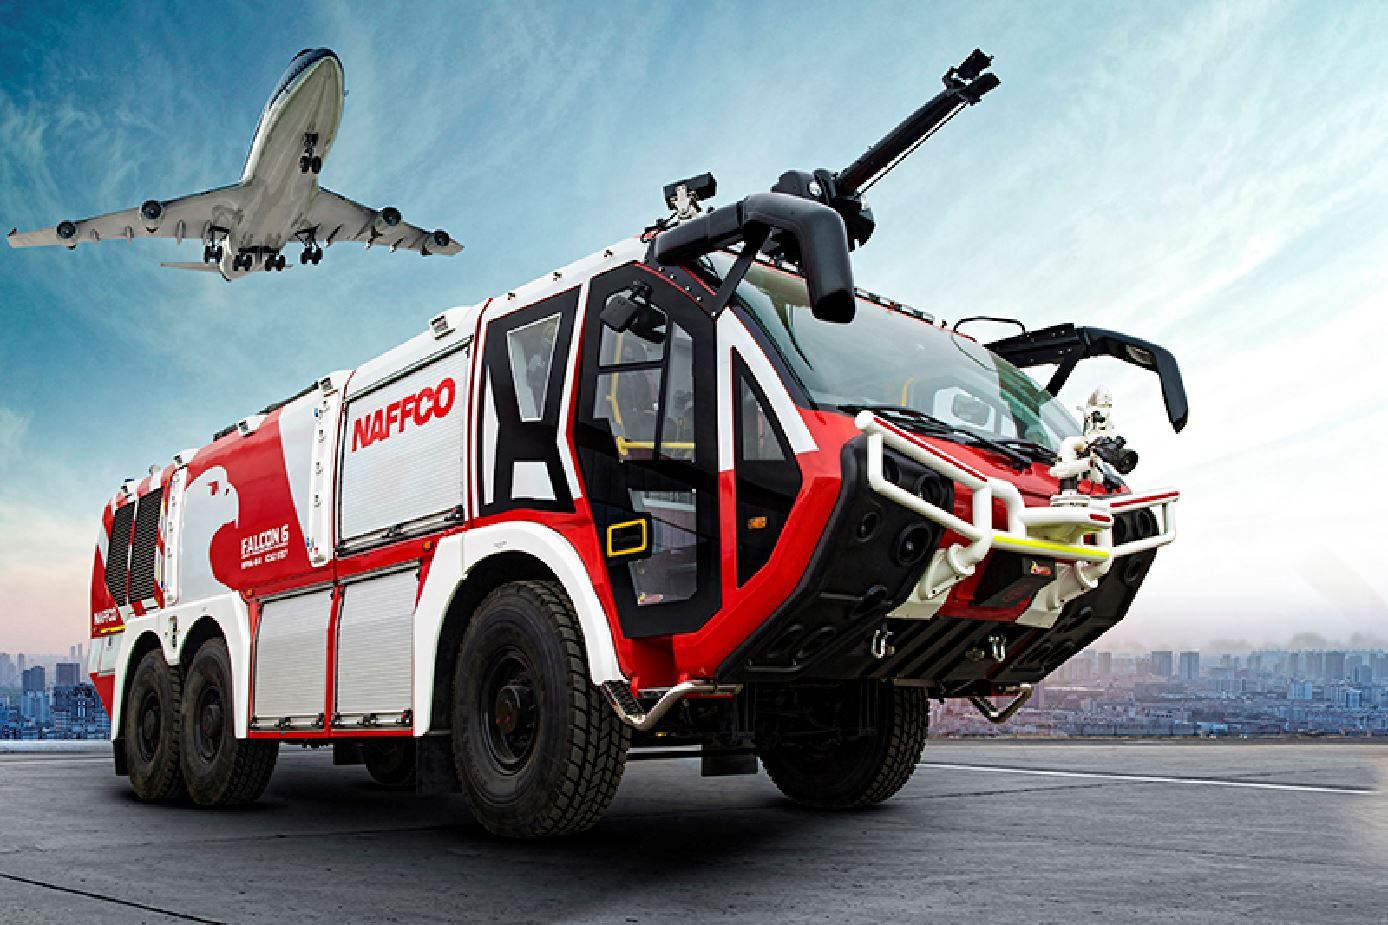 Picture of Airport Firefighter Vehicle